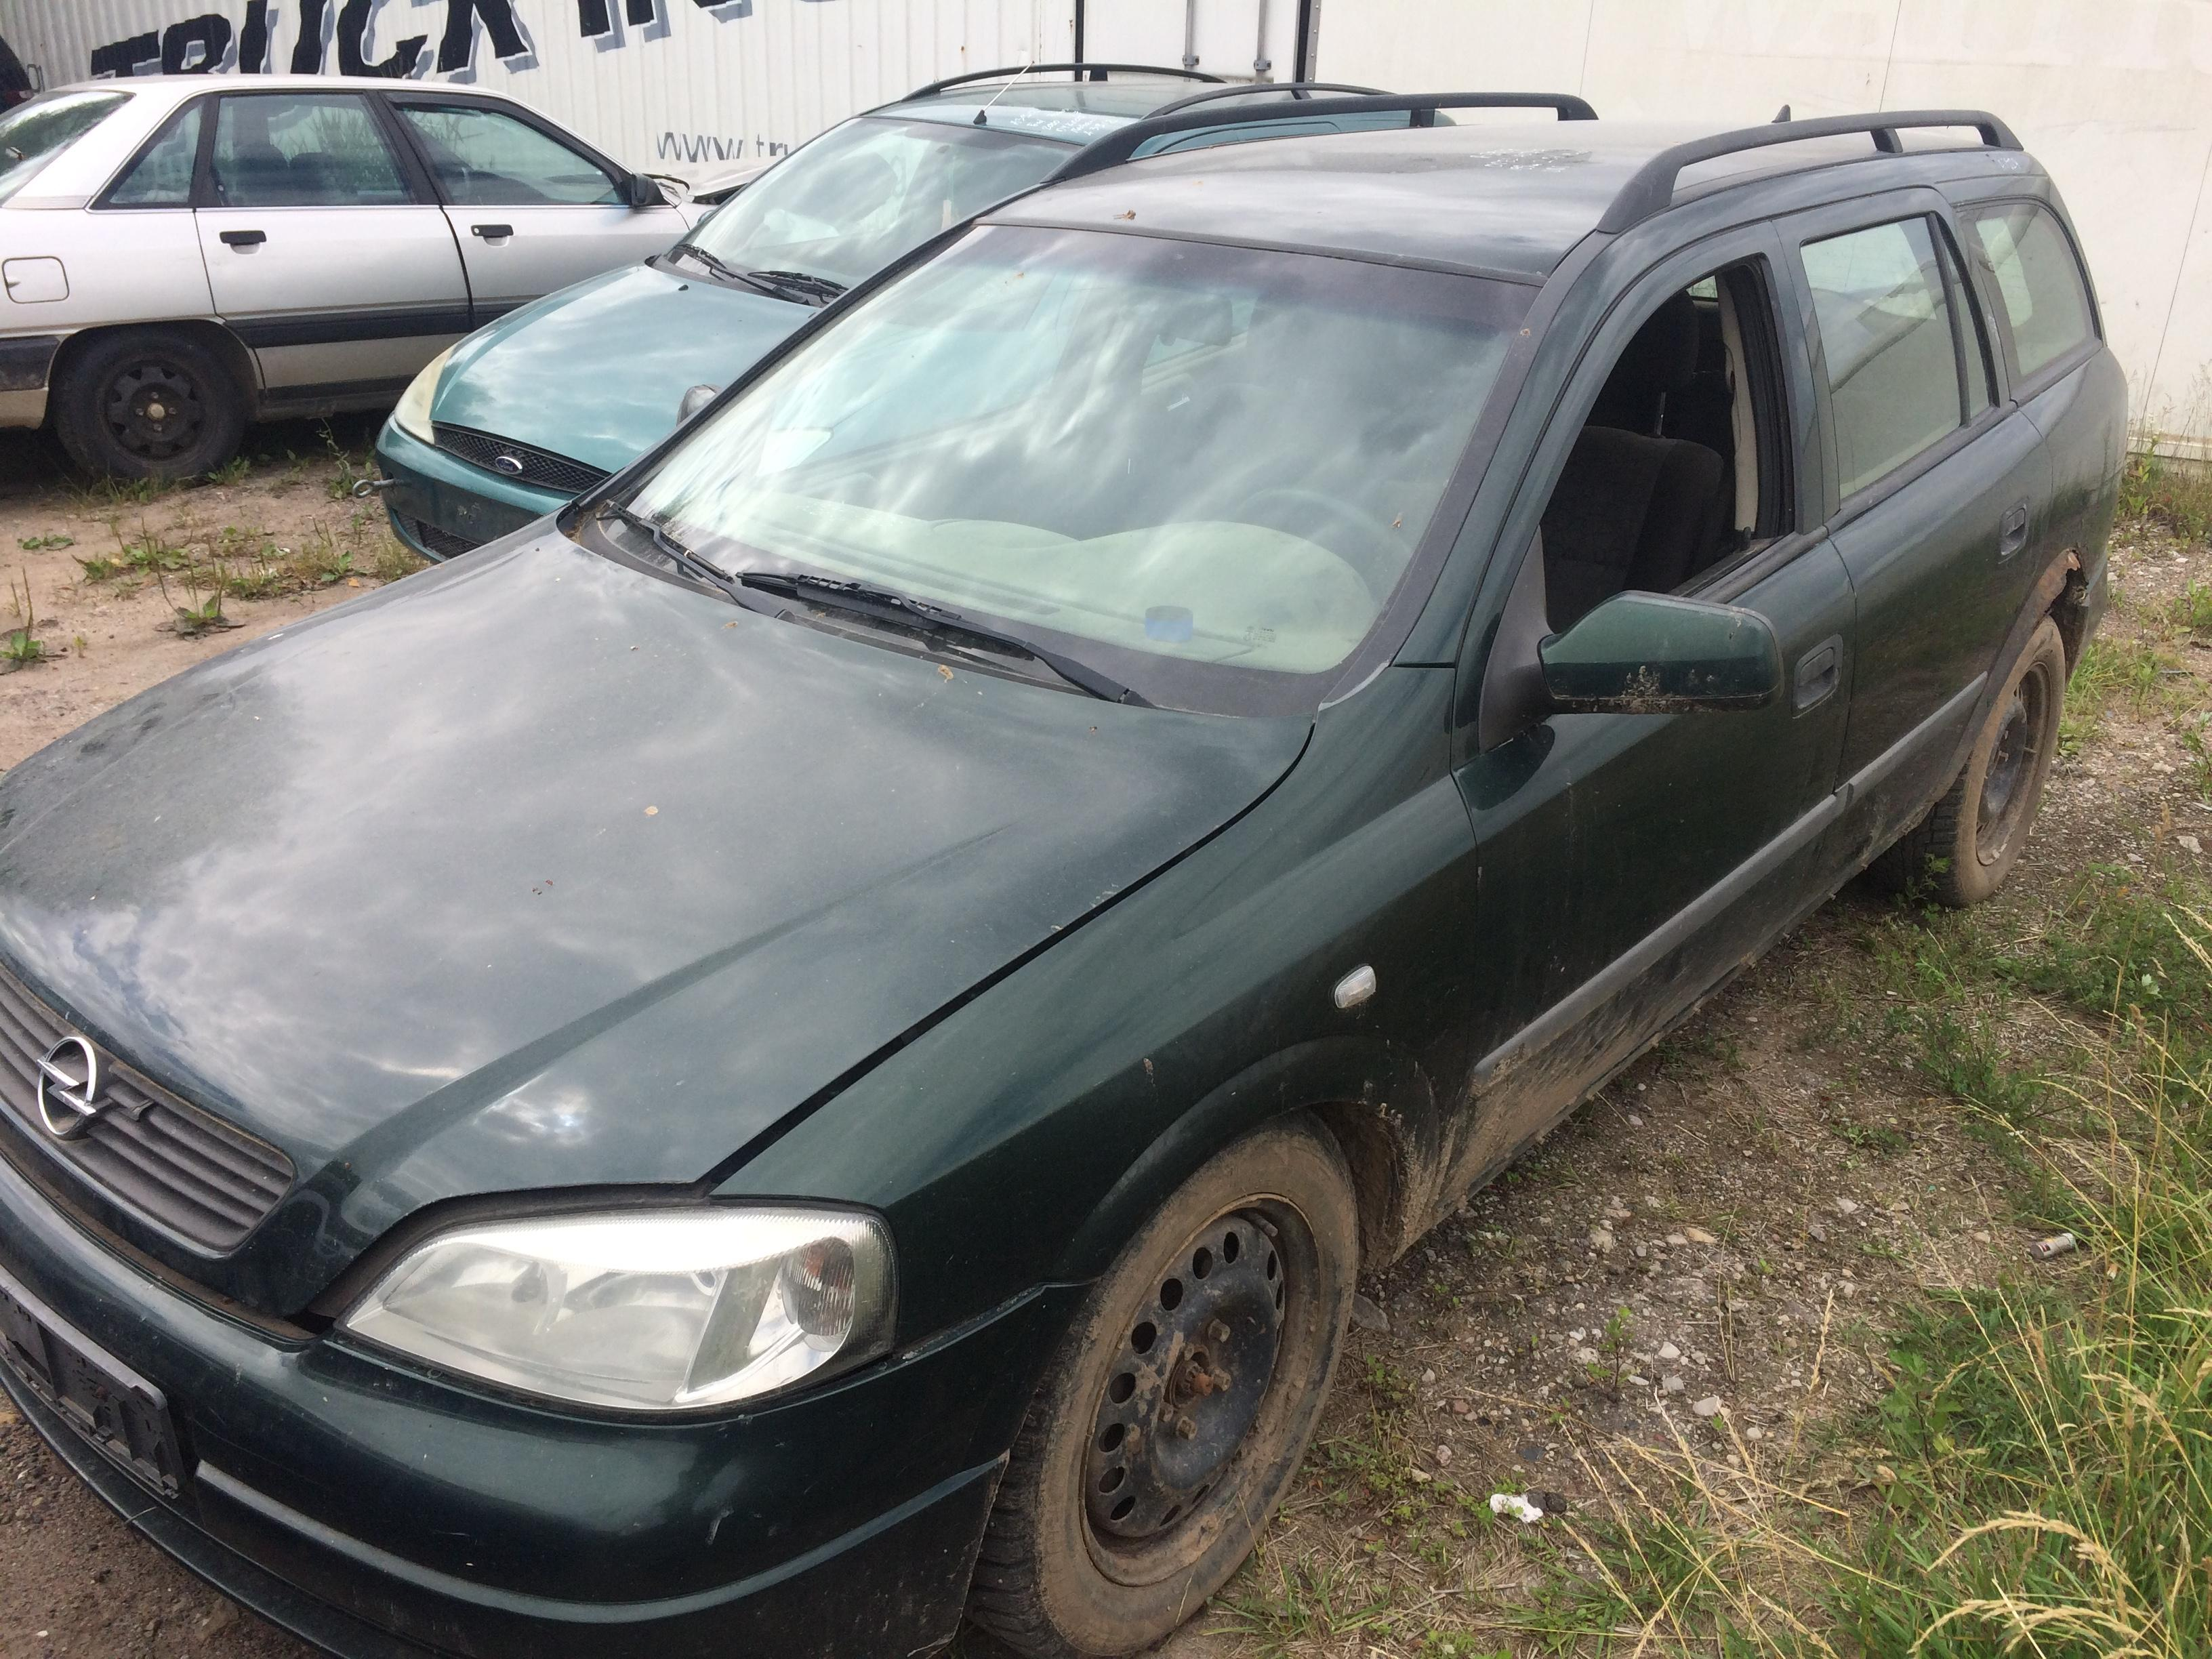 Used Car Parts Foto 3 Opel ASTRA 1999 2.0 Mechanical Universal 4/5 d. Green 2018-7-10 A3924